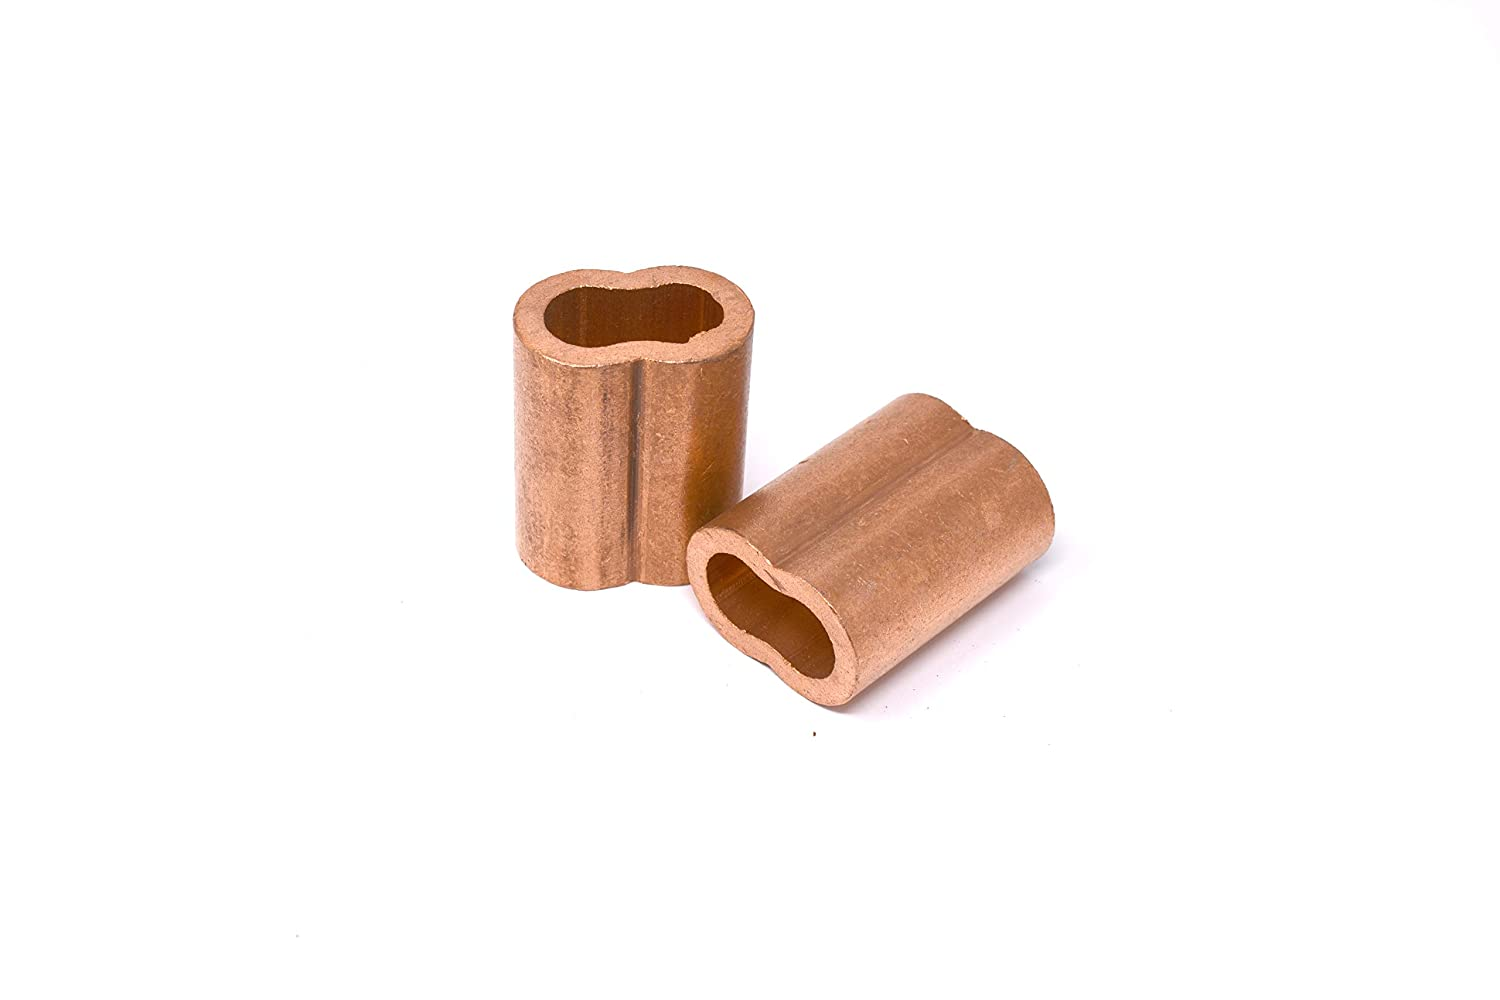 Oval Duplex Wire Rope Cable Crimping Loop Fittings 1//2 inch Pack of 1 SwageRight MIL-SPEC Copper Swage Sleeves Clip /& Ferrules